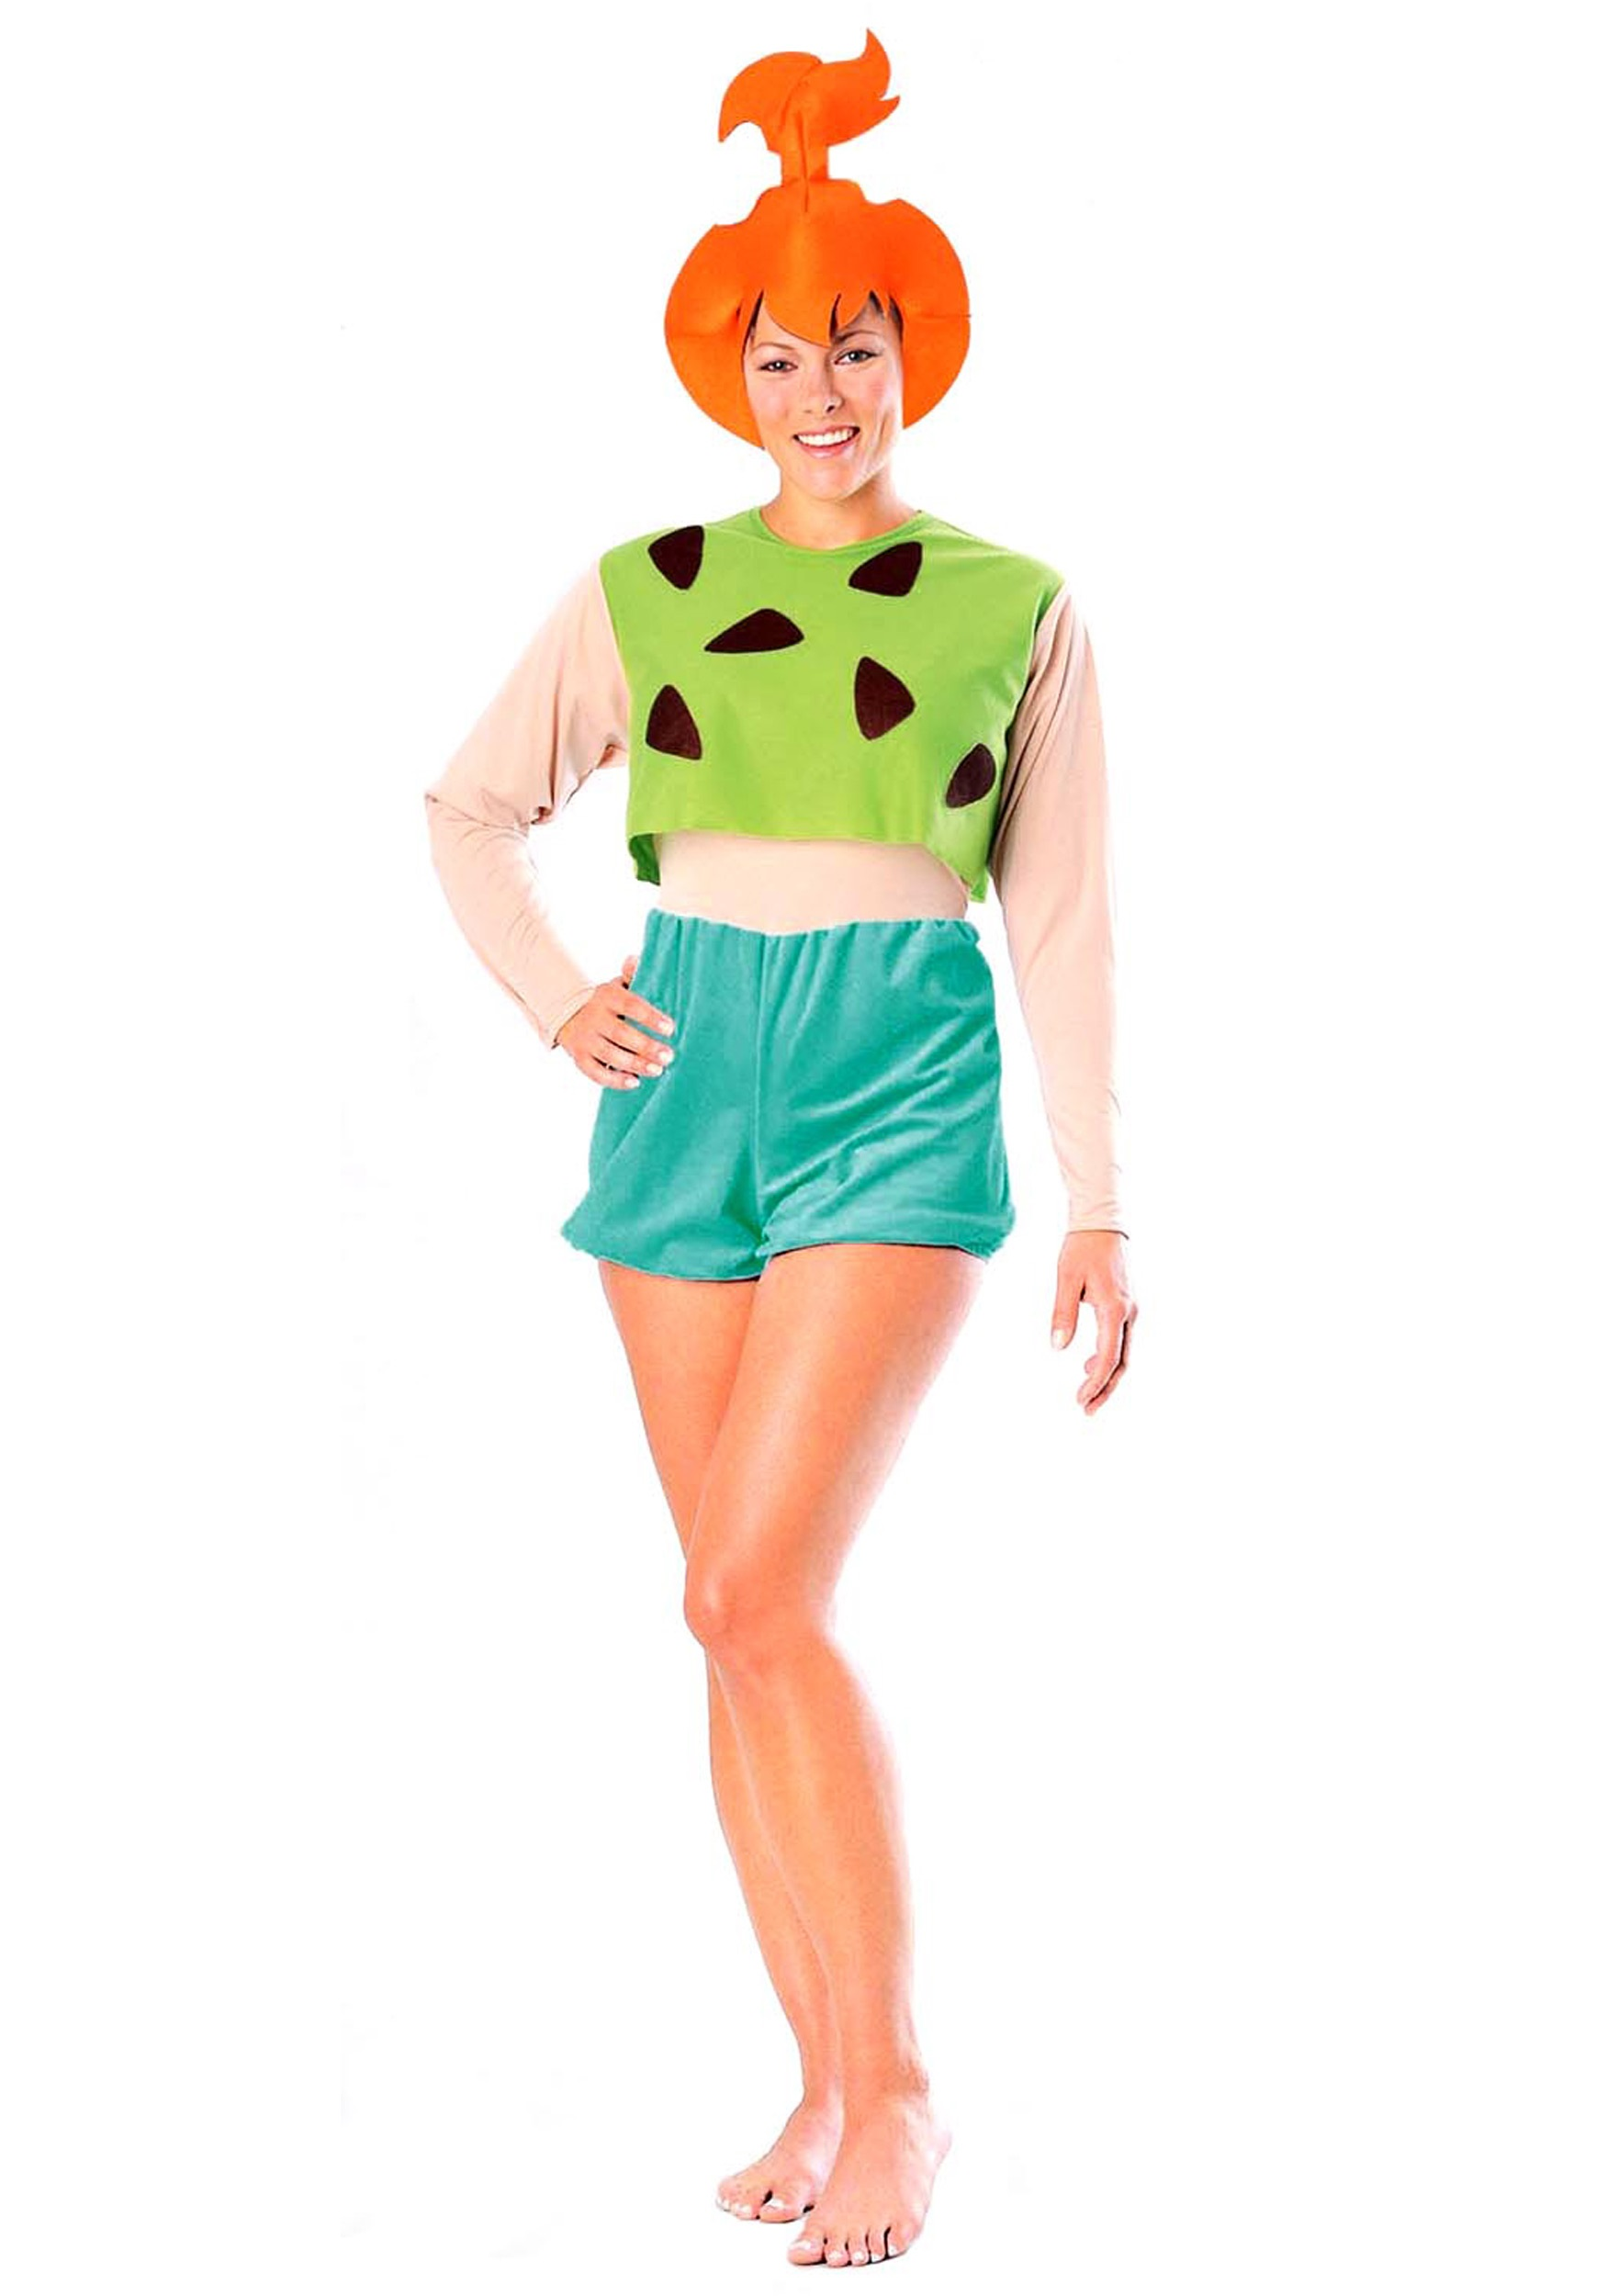 Pebbles Flintstone Adult Costume  sc 1 st  Halloween Costumes & Pebbles Flintstone Adult Costume - Flintstones Pebbles Costumes